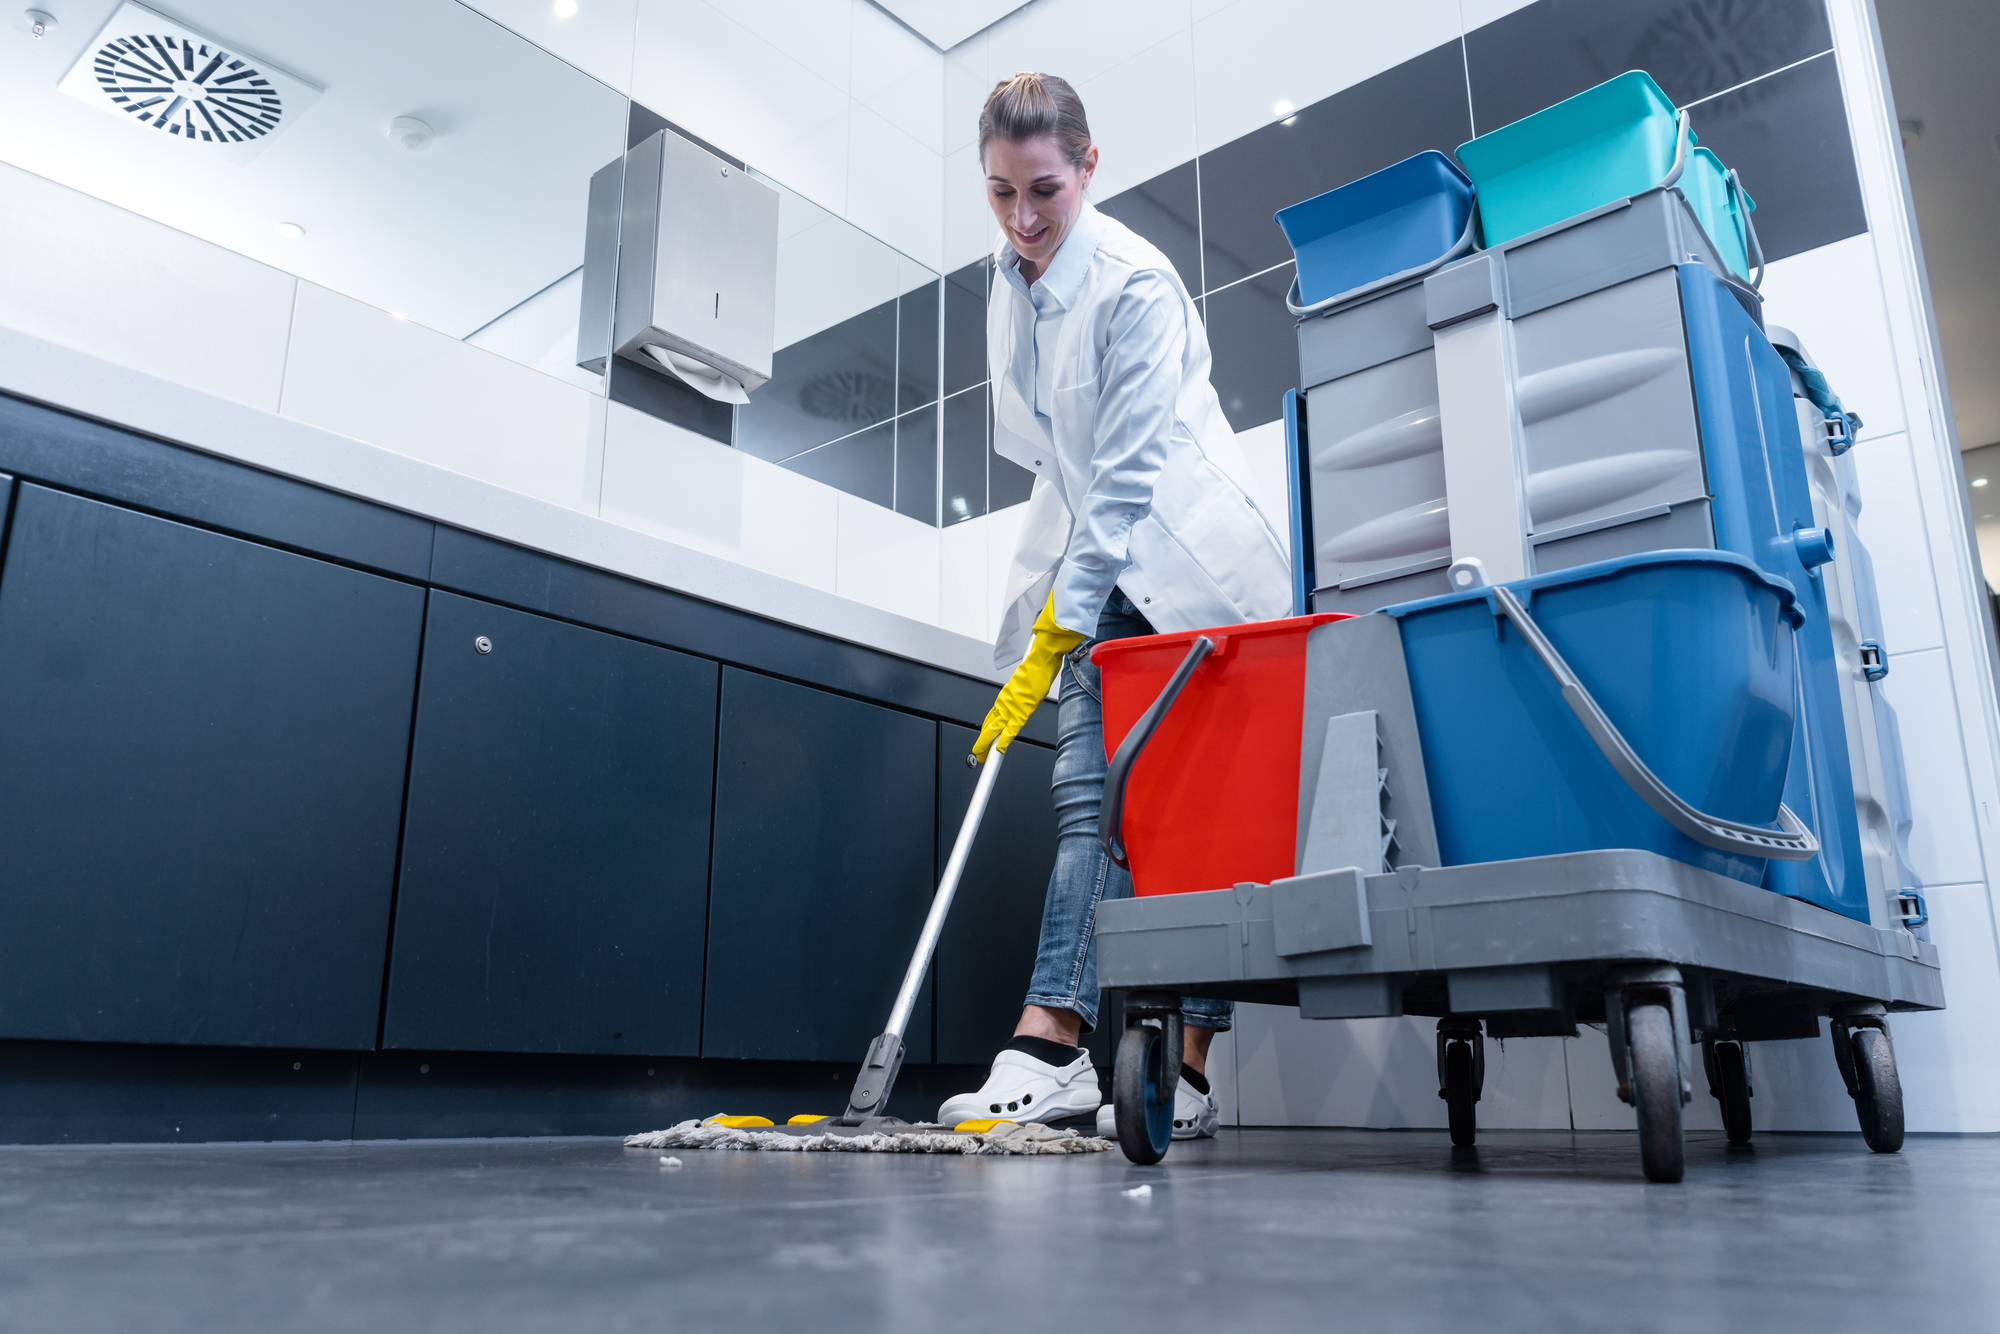 Colts-Neck-Township-Restaurant-Cleaning